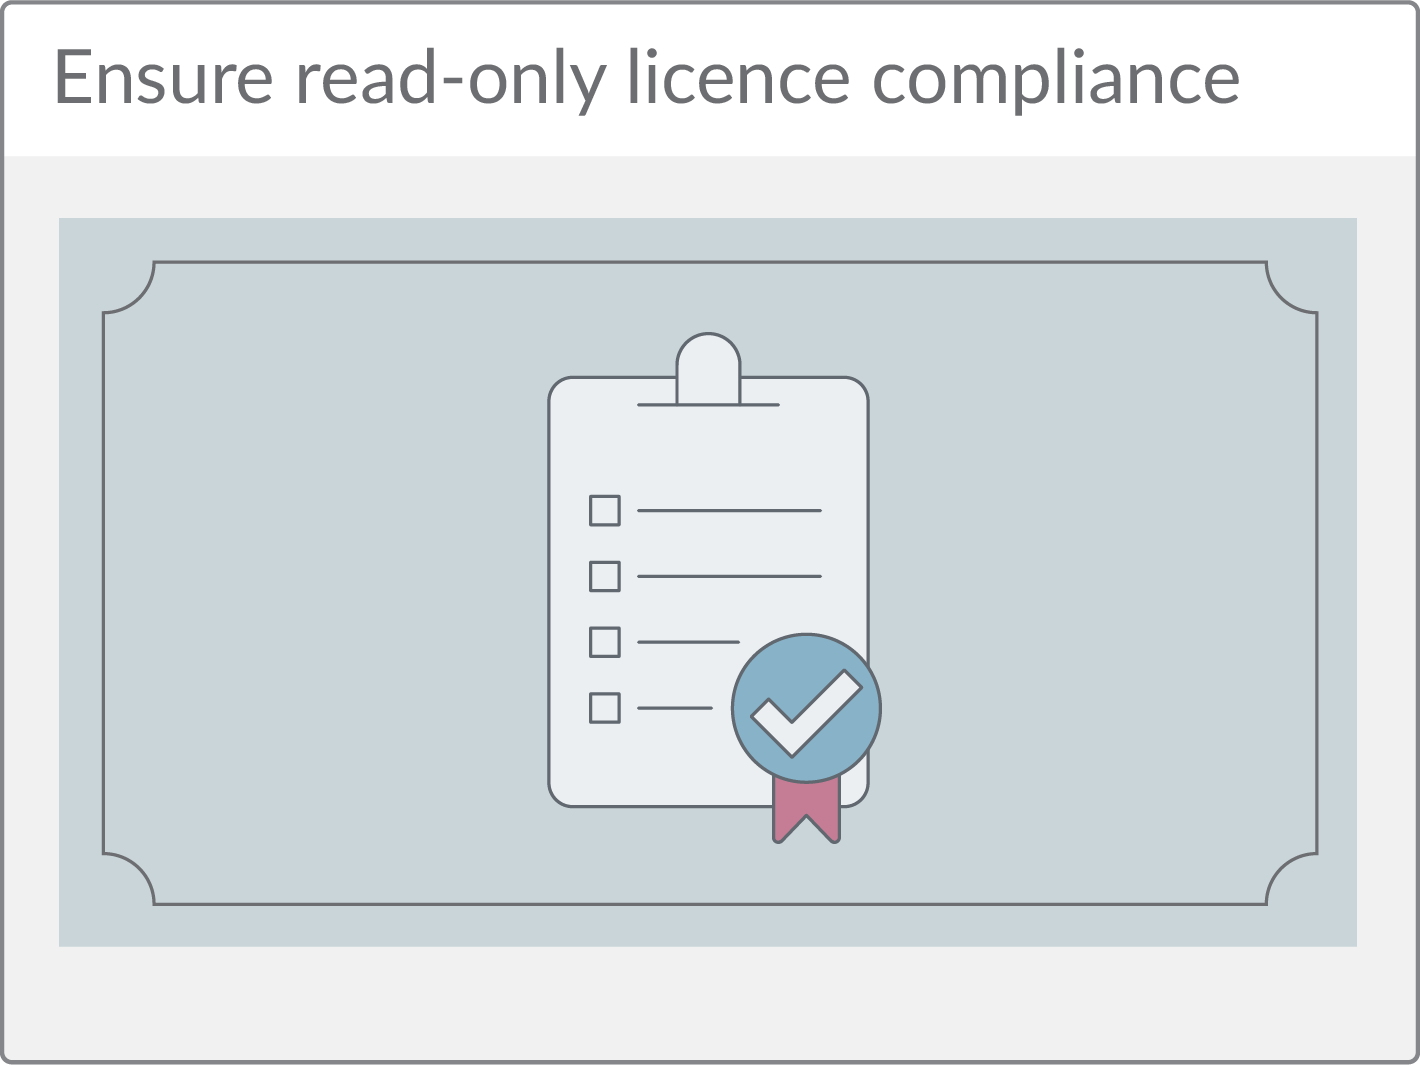 Ensure read-only licence compliance